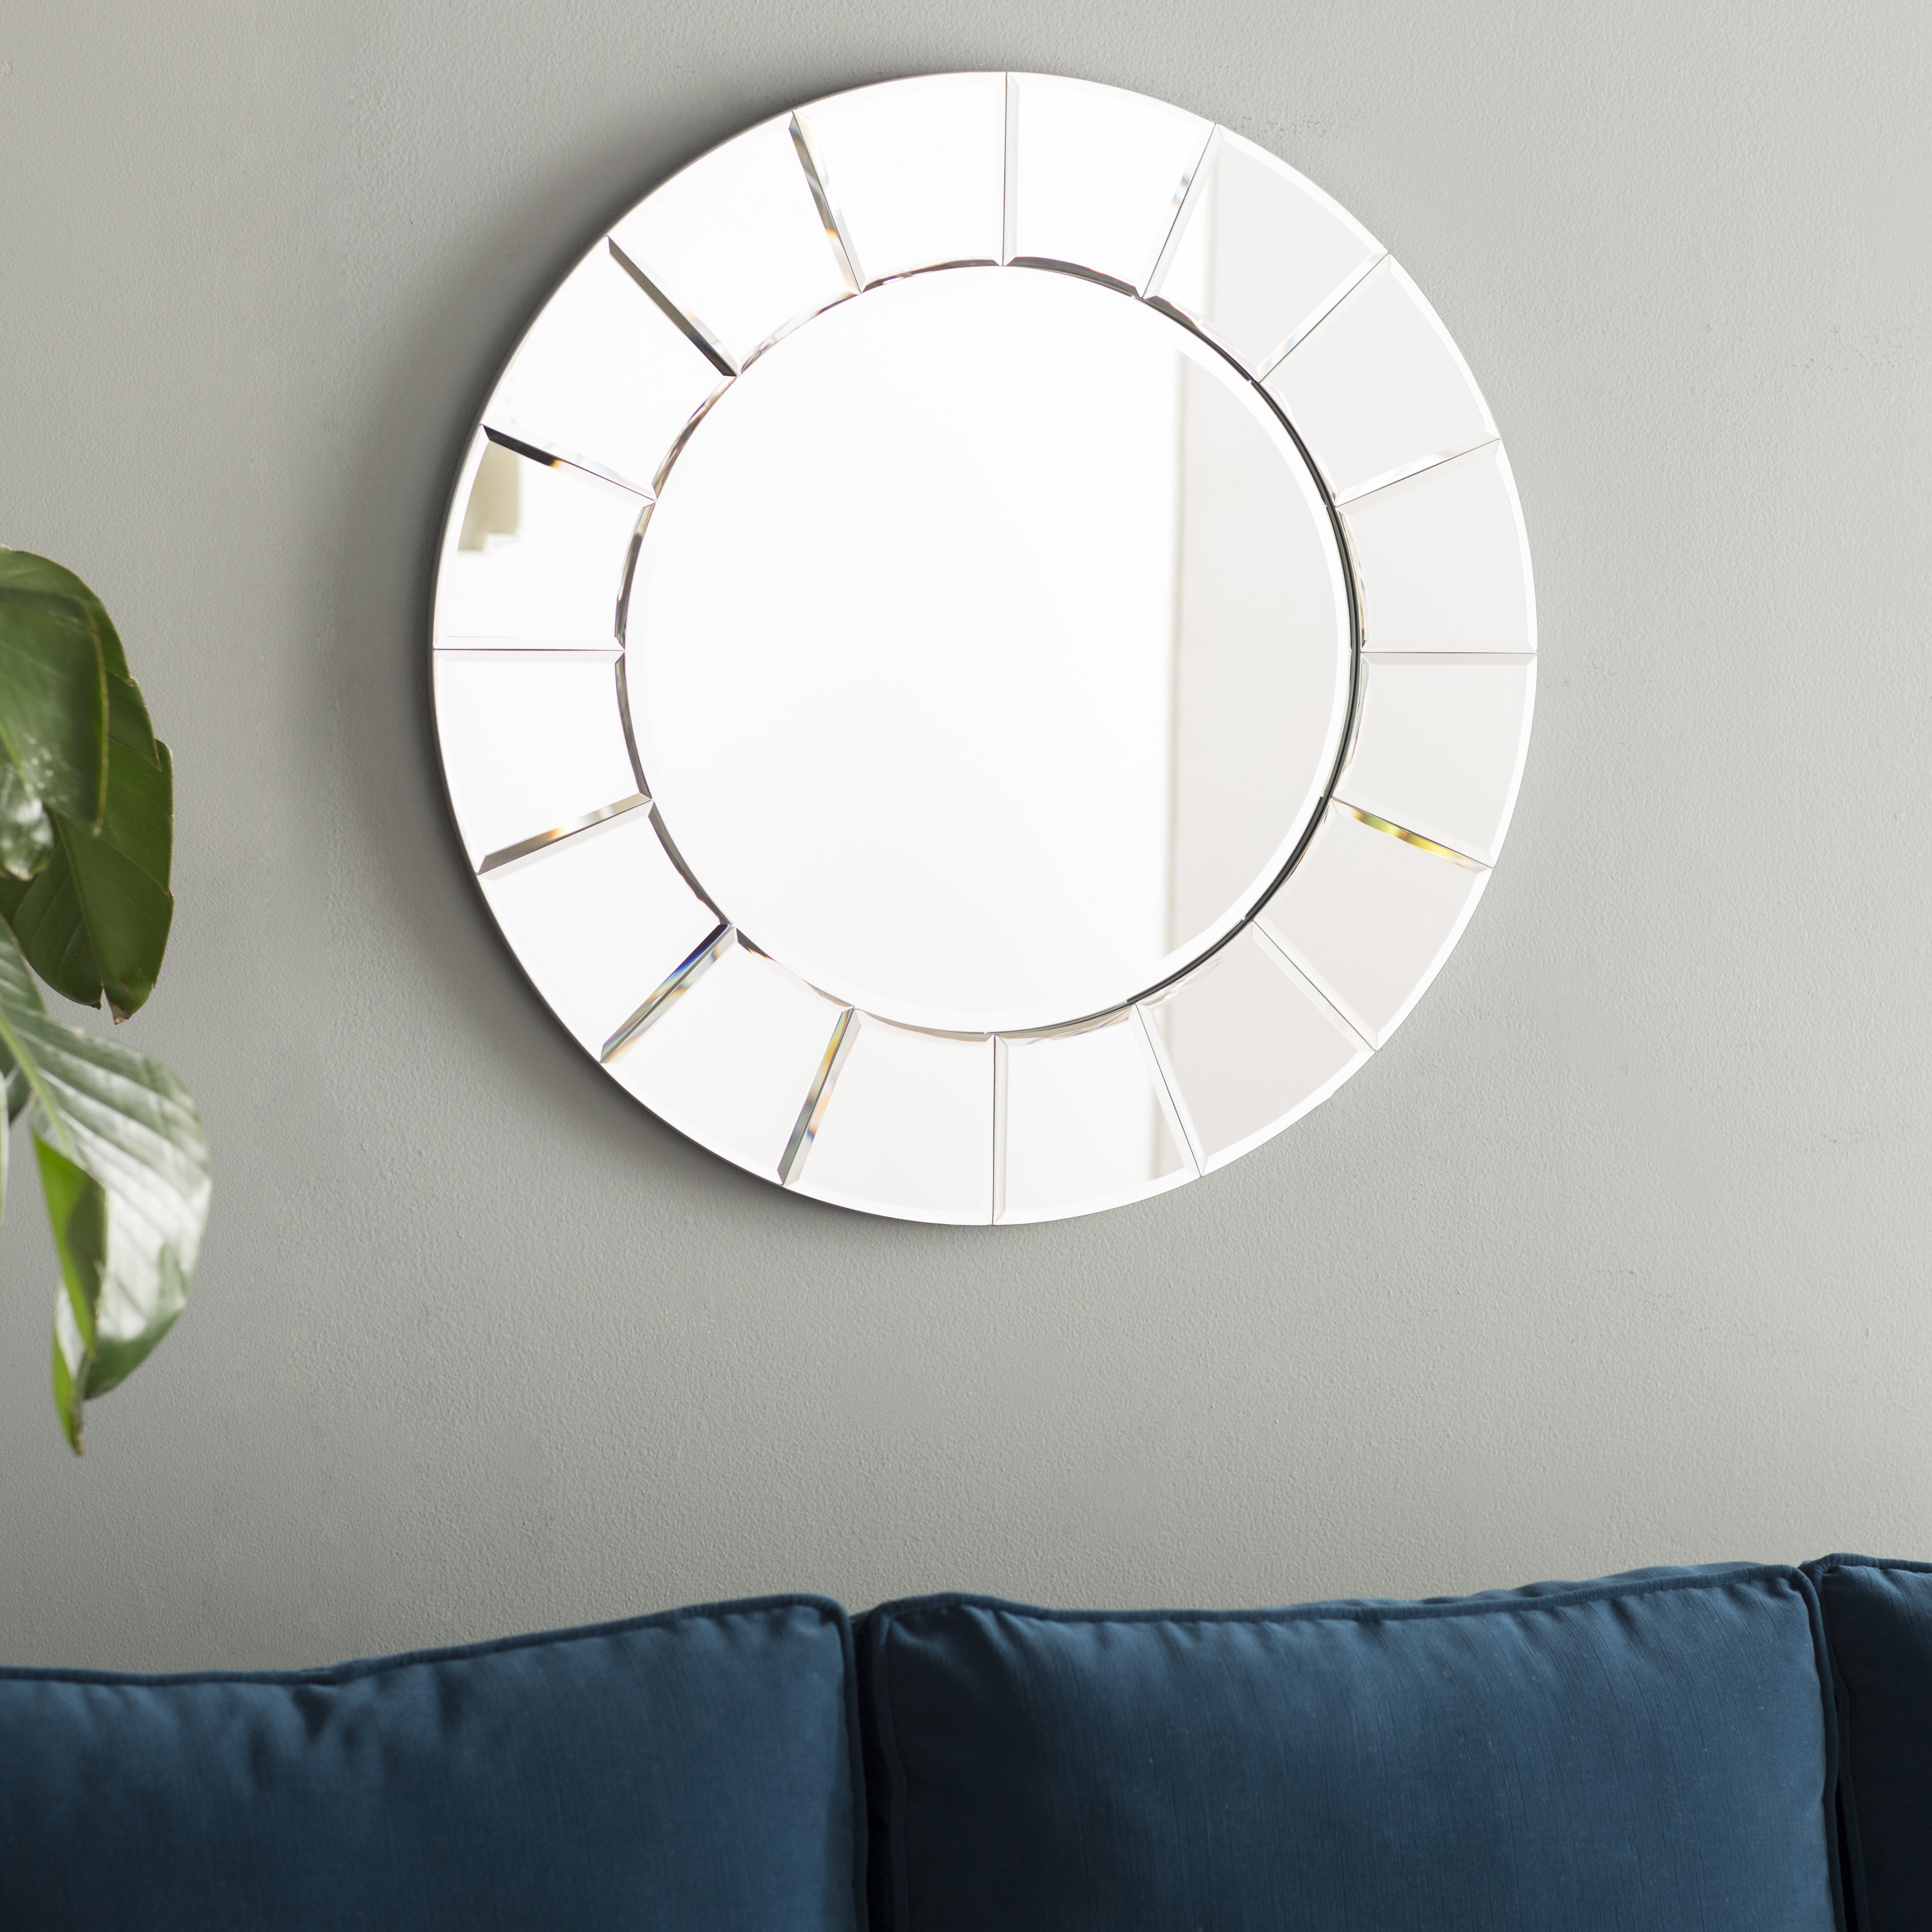 Clover Shaped Mirrors | Wayfair For Sun Shaped Wall Mirrors (View 11 of 20)